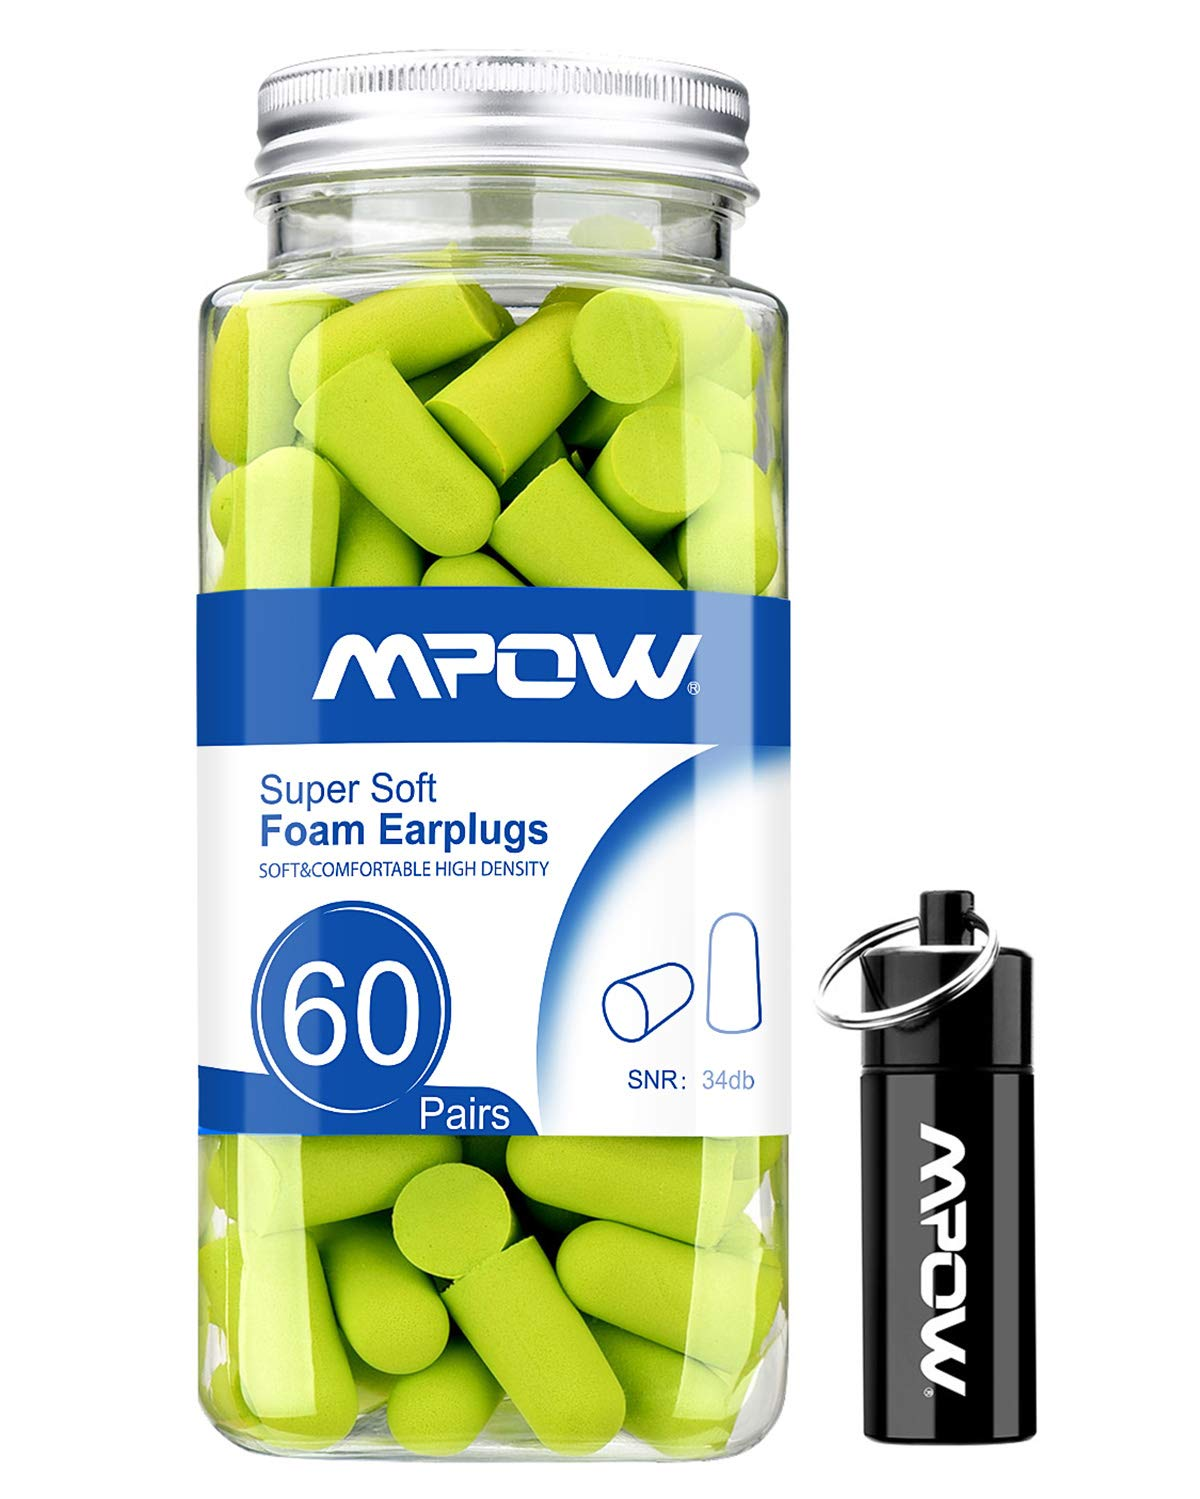 Mpow Foam Earplugs 60 Pairs with Aluminum Carry Case, 34Db SNR Ear Plugs, soft Earplugs Noise Reduction For Hearing Protection, Hunting Season, Sleeping, Working, Shooting, Travel-Green by Mpow